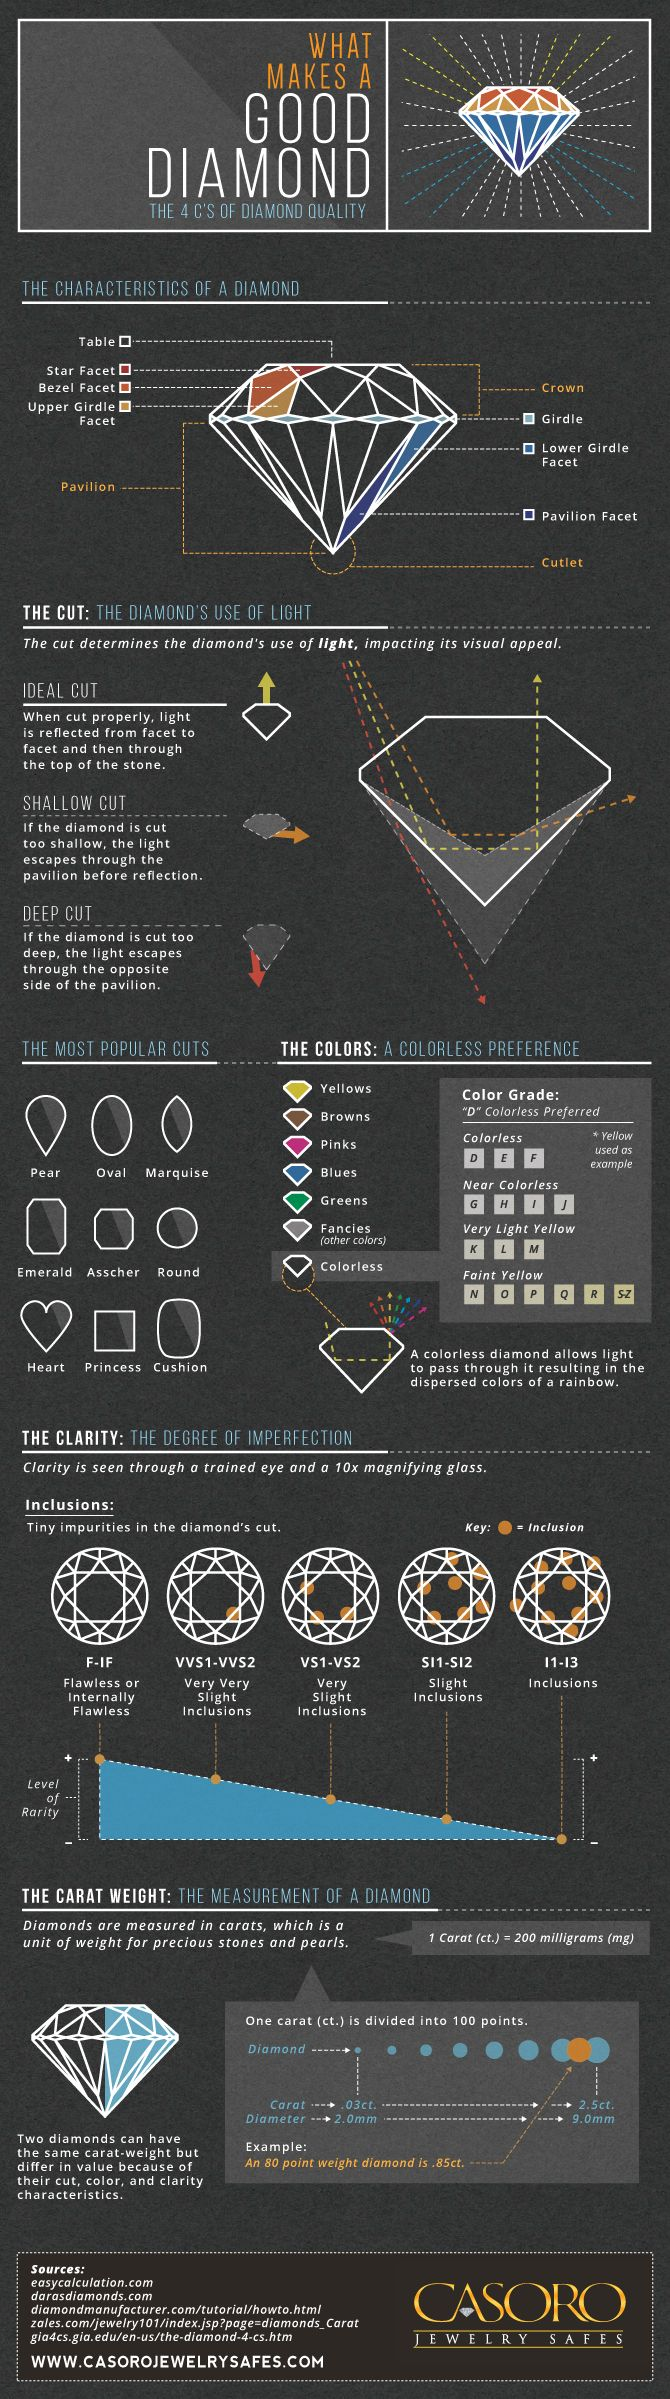 What Makes a Good Diamond Infographic -  CASORO Jewelry Safes